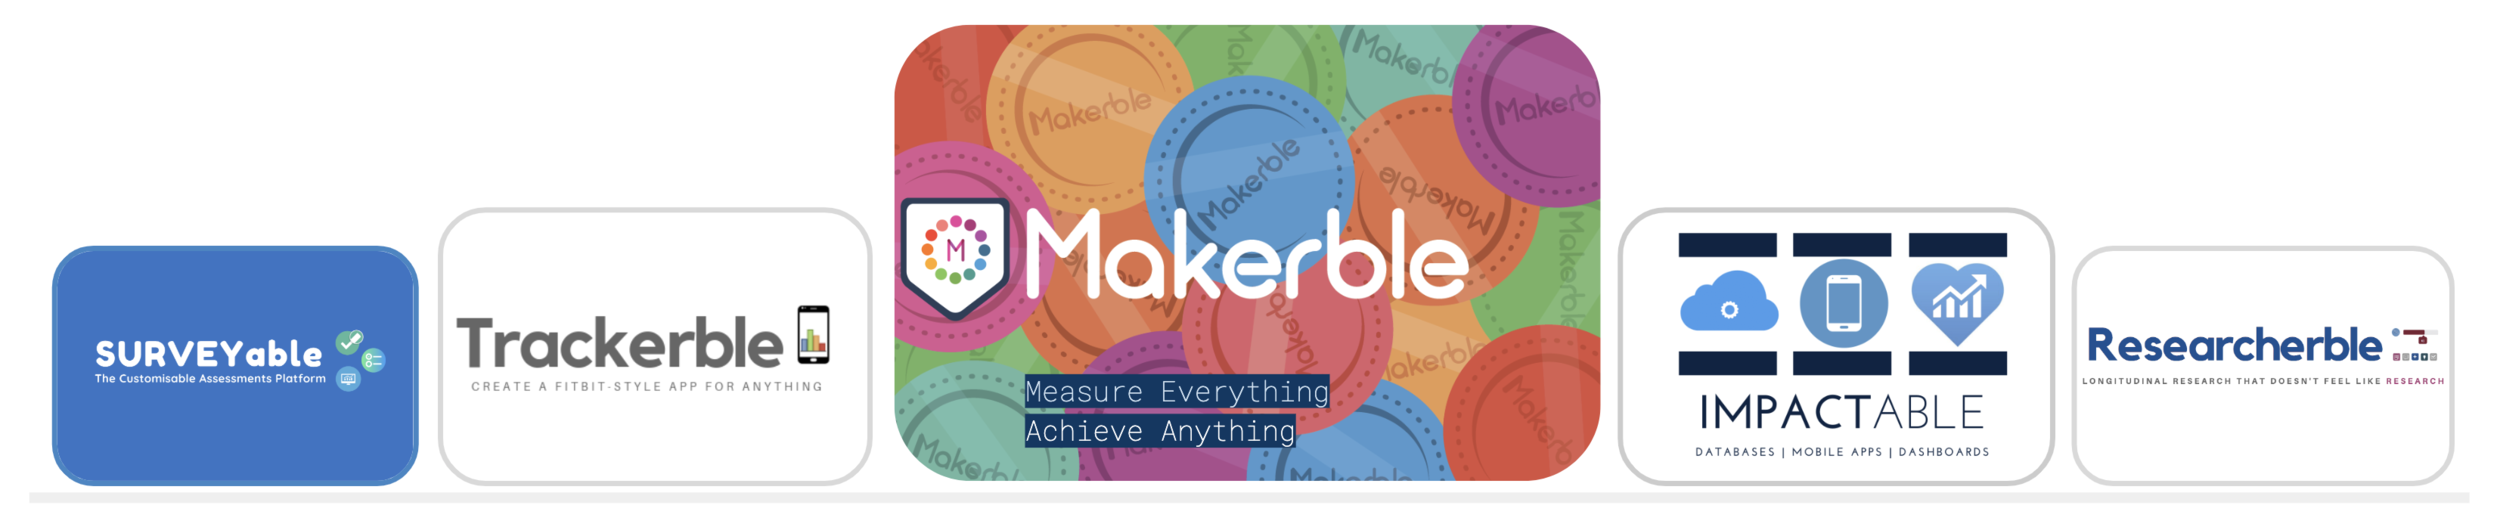 Makerble Brands on White.png